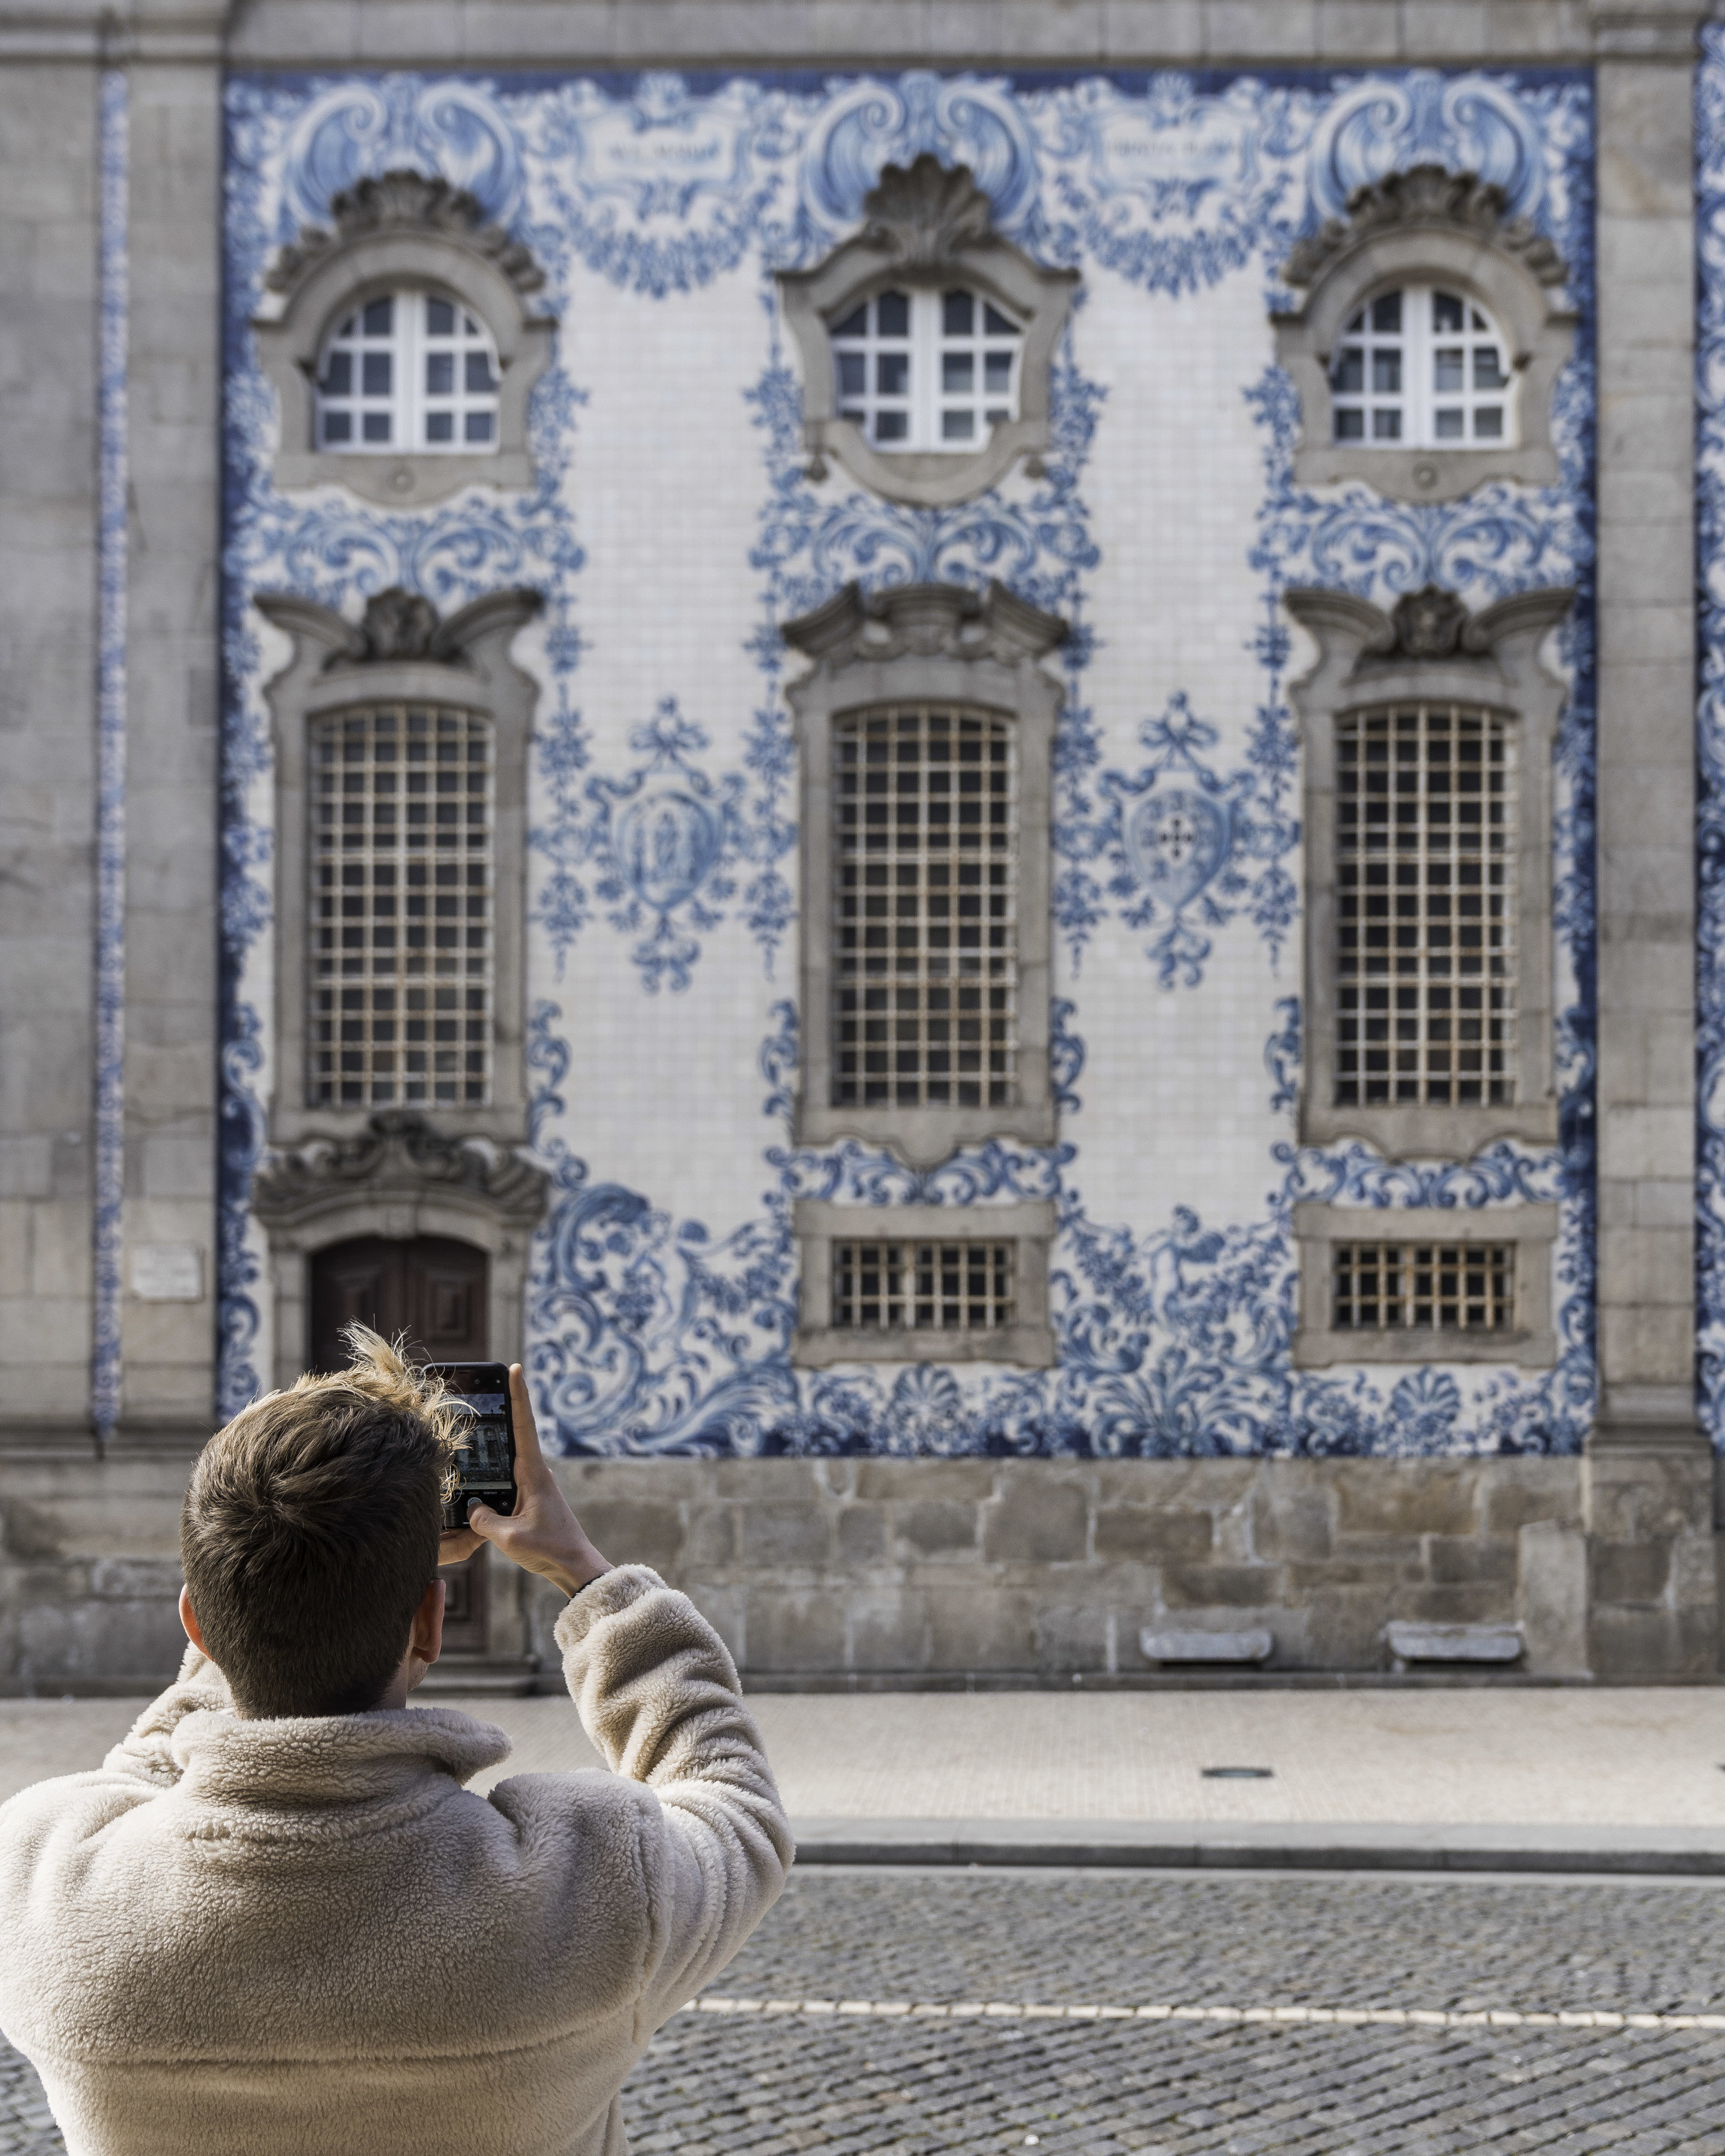 Igreja do Carmo - — the stunning facades of this church are a must see and photograph!